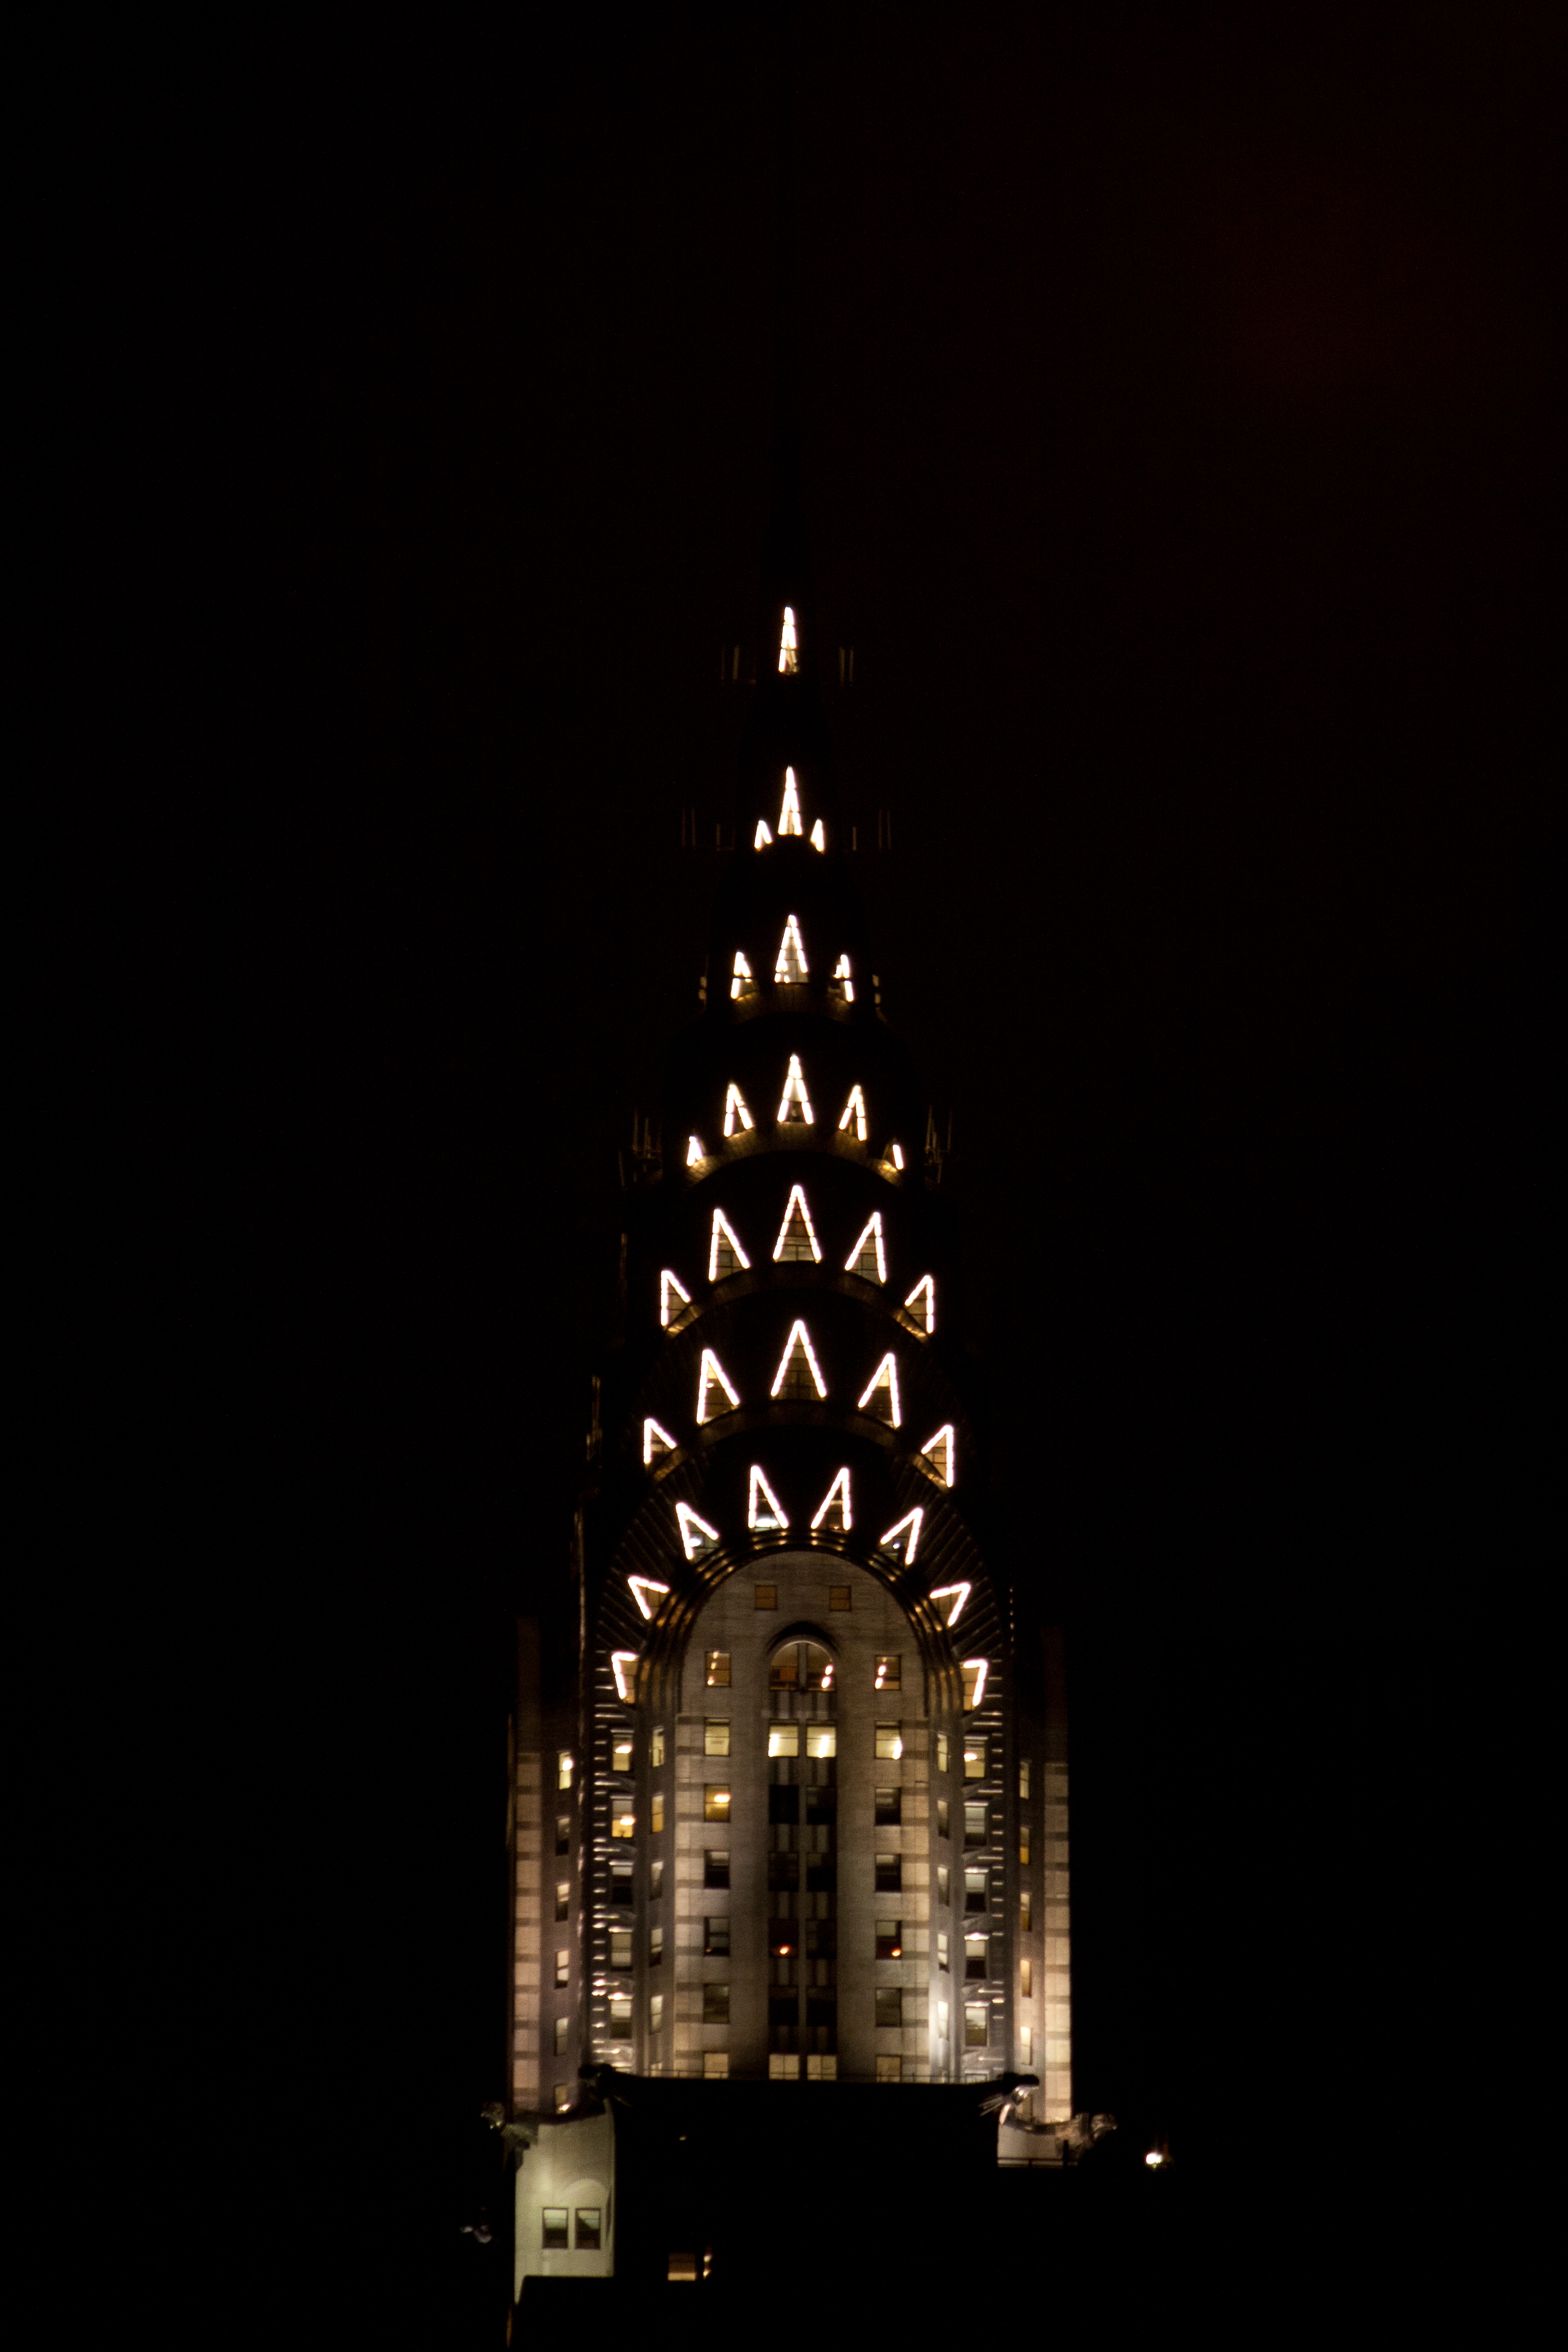 State Building At Night Black And White Chrysler Building Lit Up At